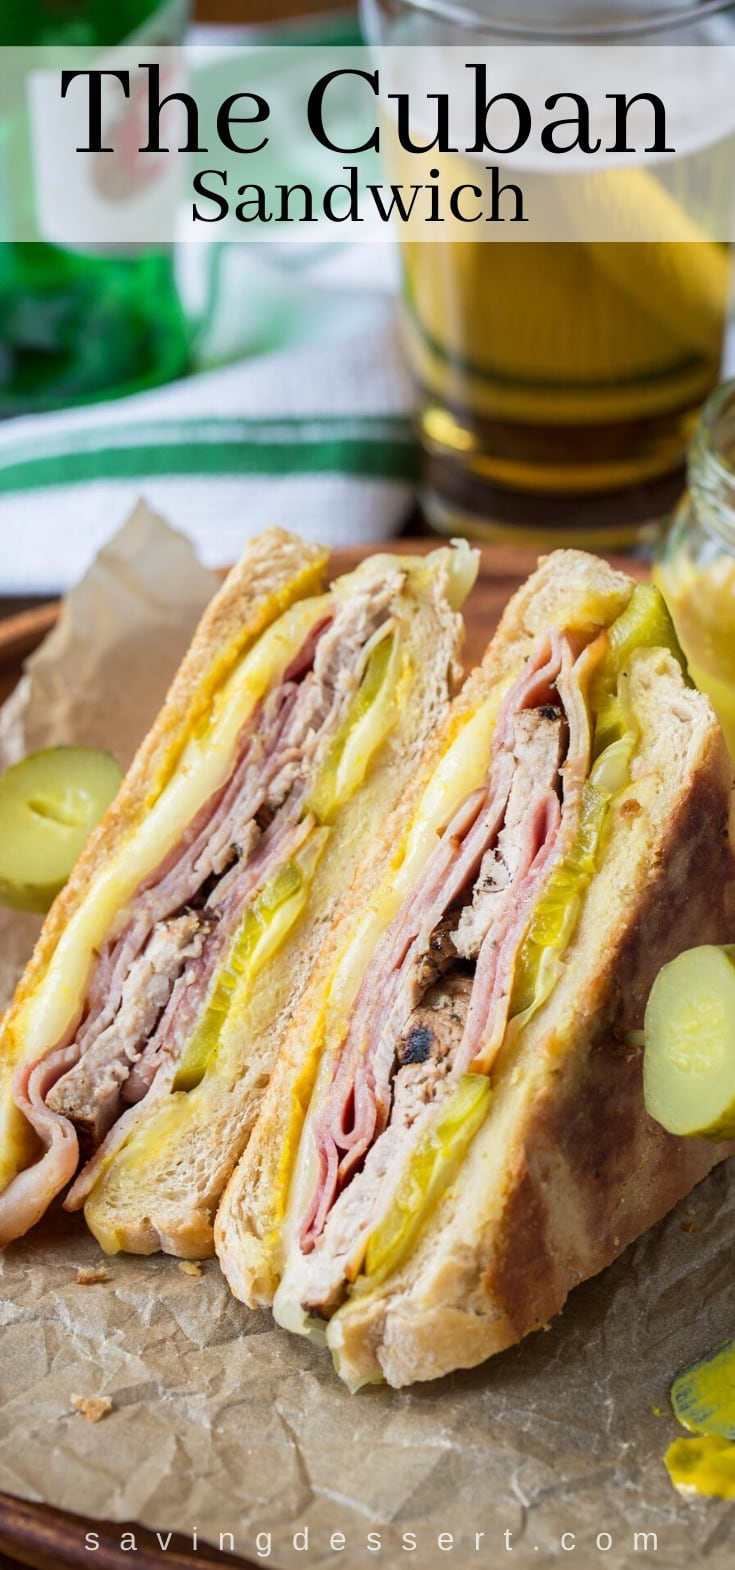 A Cuban sandwich cut in half and served with pickles